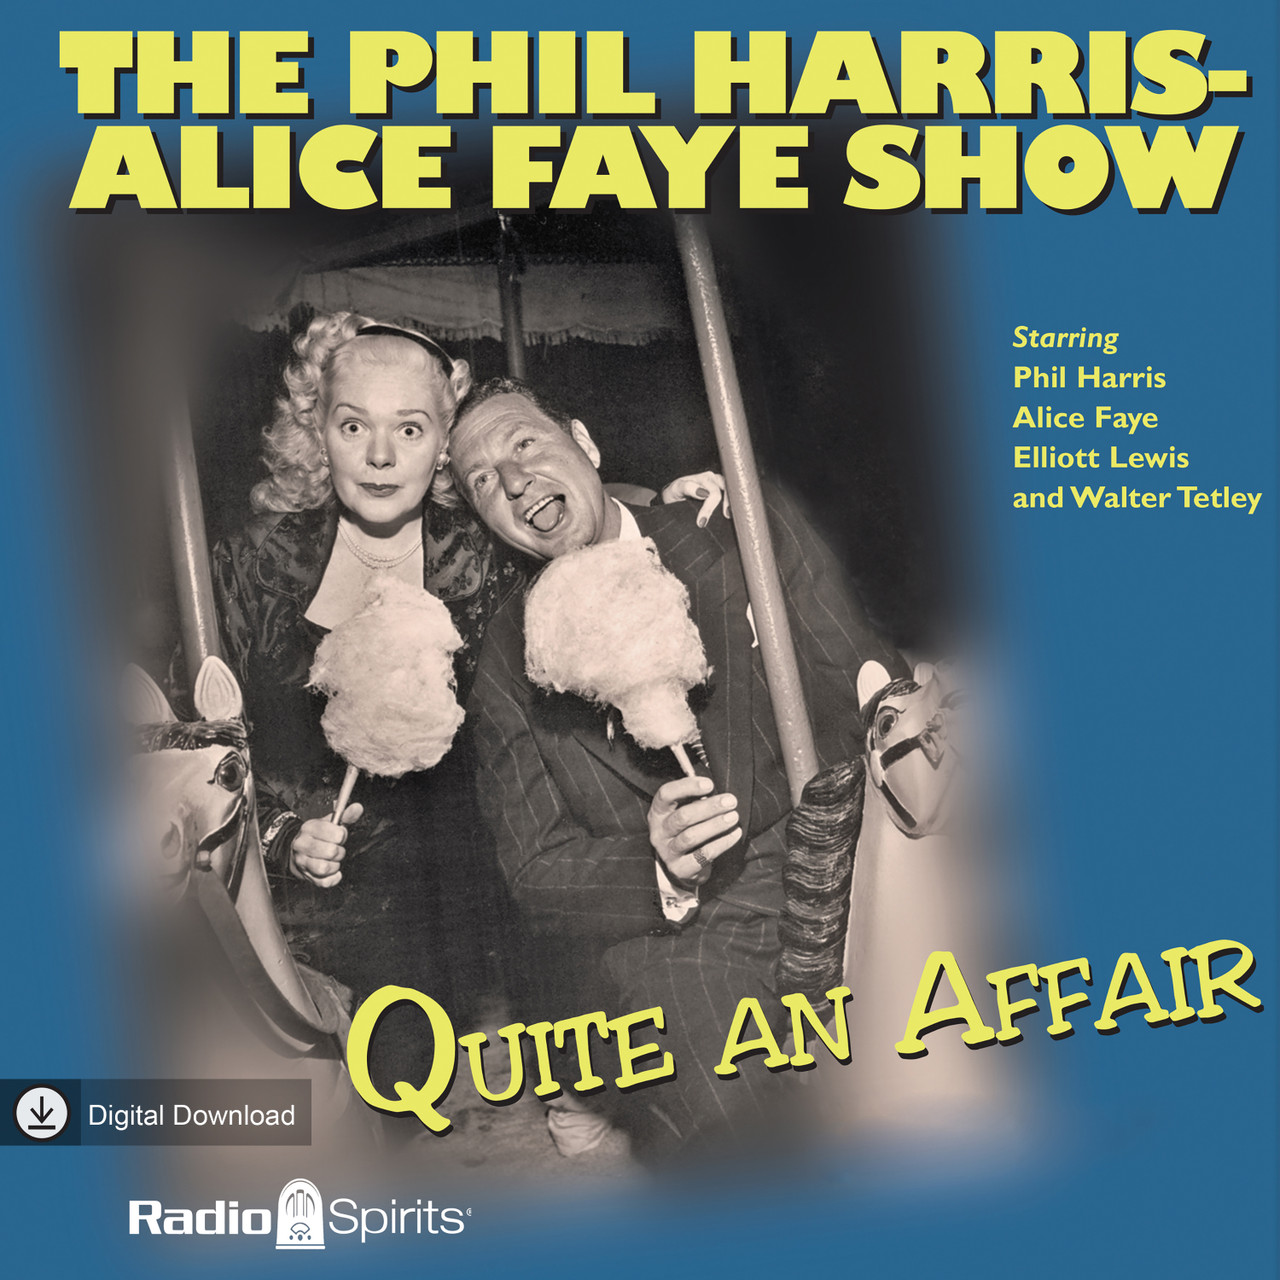 The Phil Harris Alice Faye Show: Quite an Affair (MP3 Download)